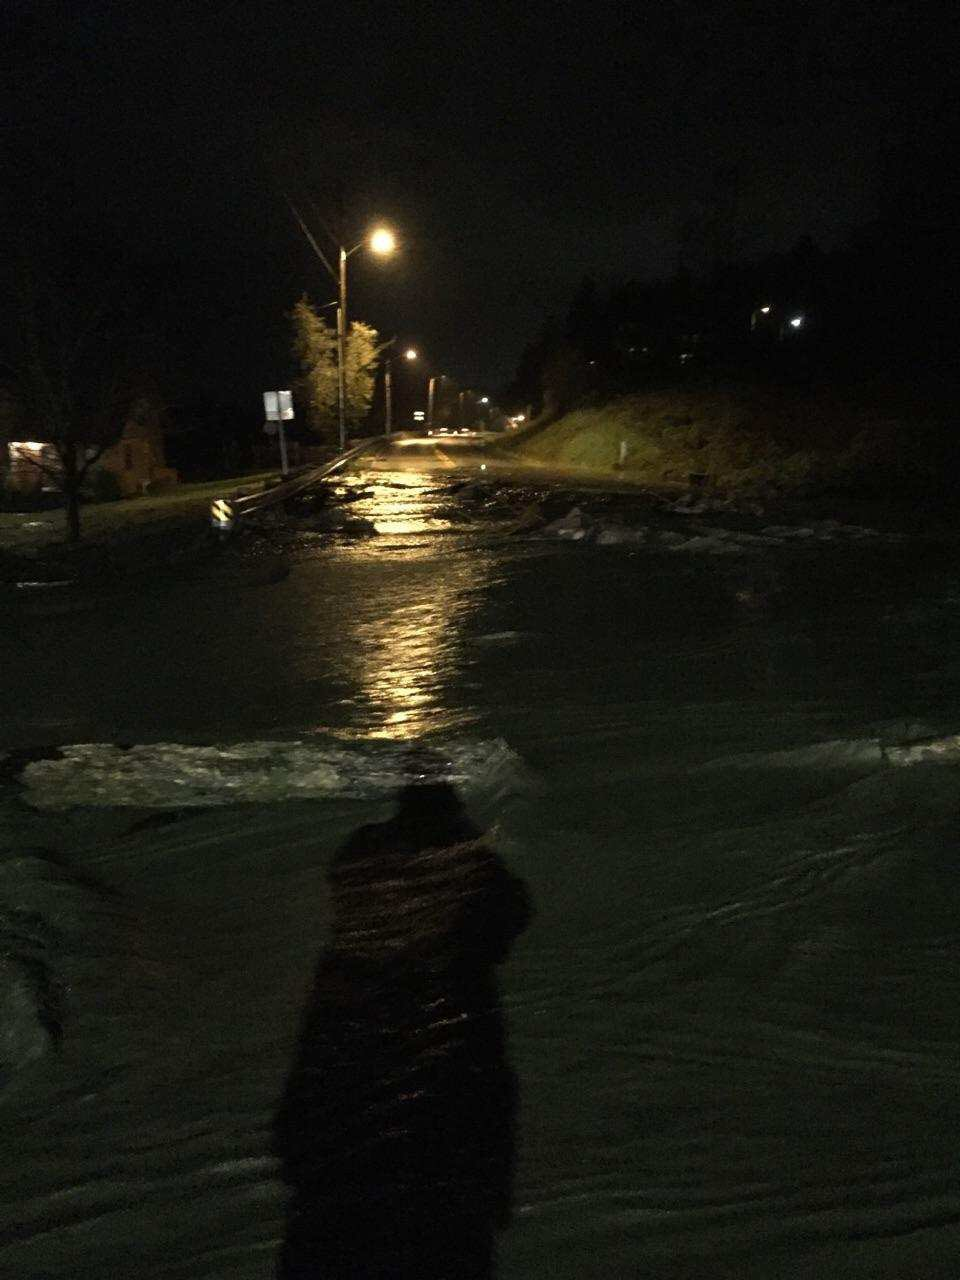 Water rushes over Marysville's Sunnyside Blvd. (Photo: Marysville Police)